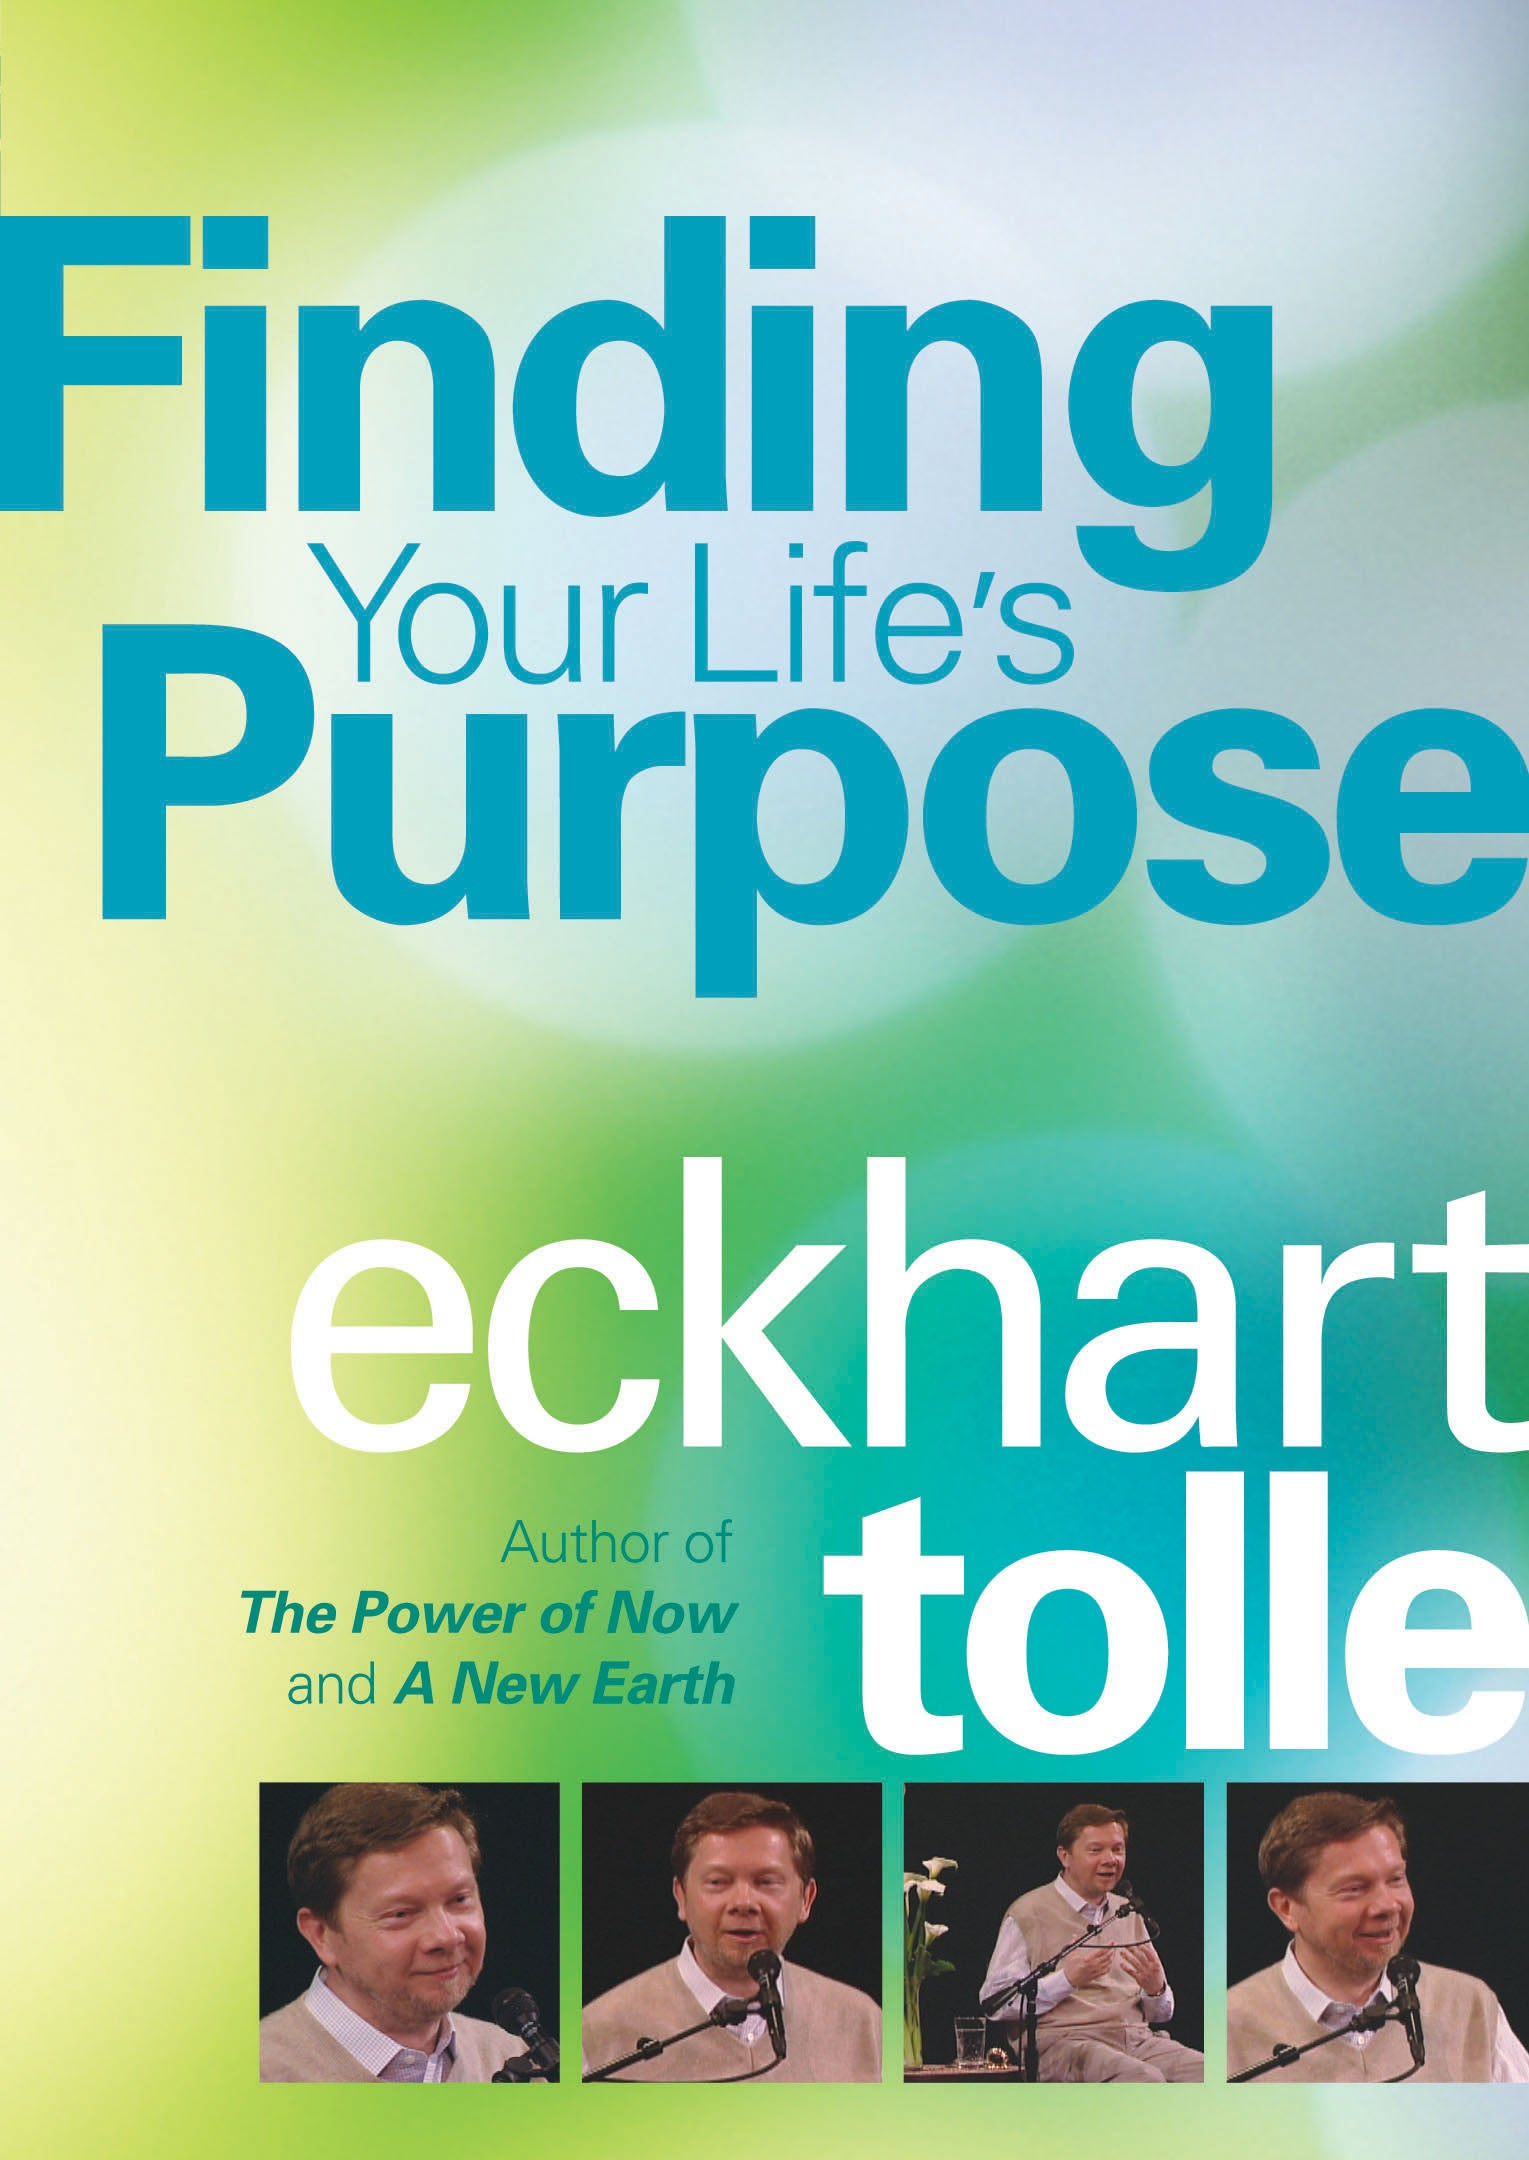 FINDING YOUR LIFE'S PURPOSE - INSIDE OUT